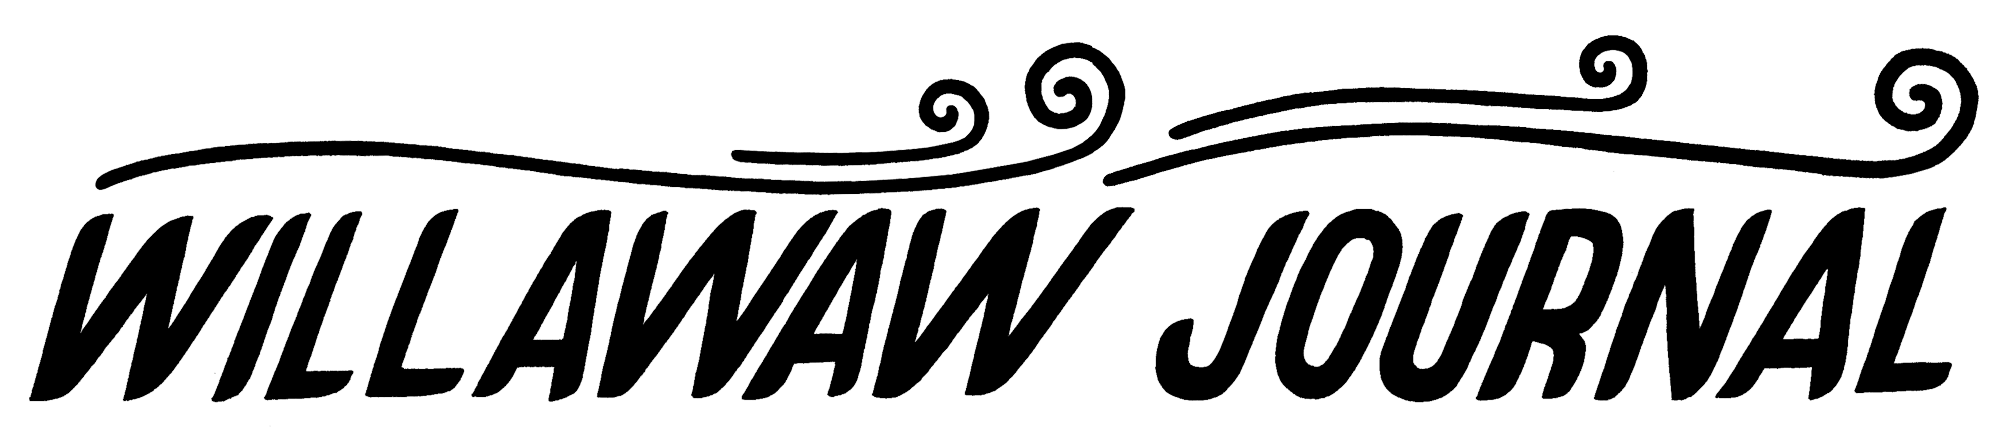 Willawaw Journal